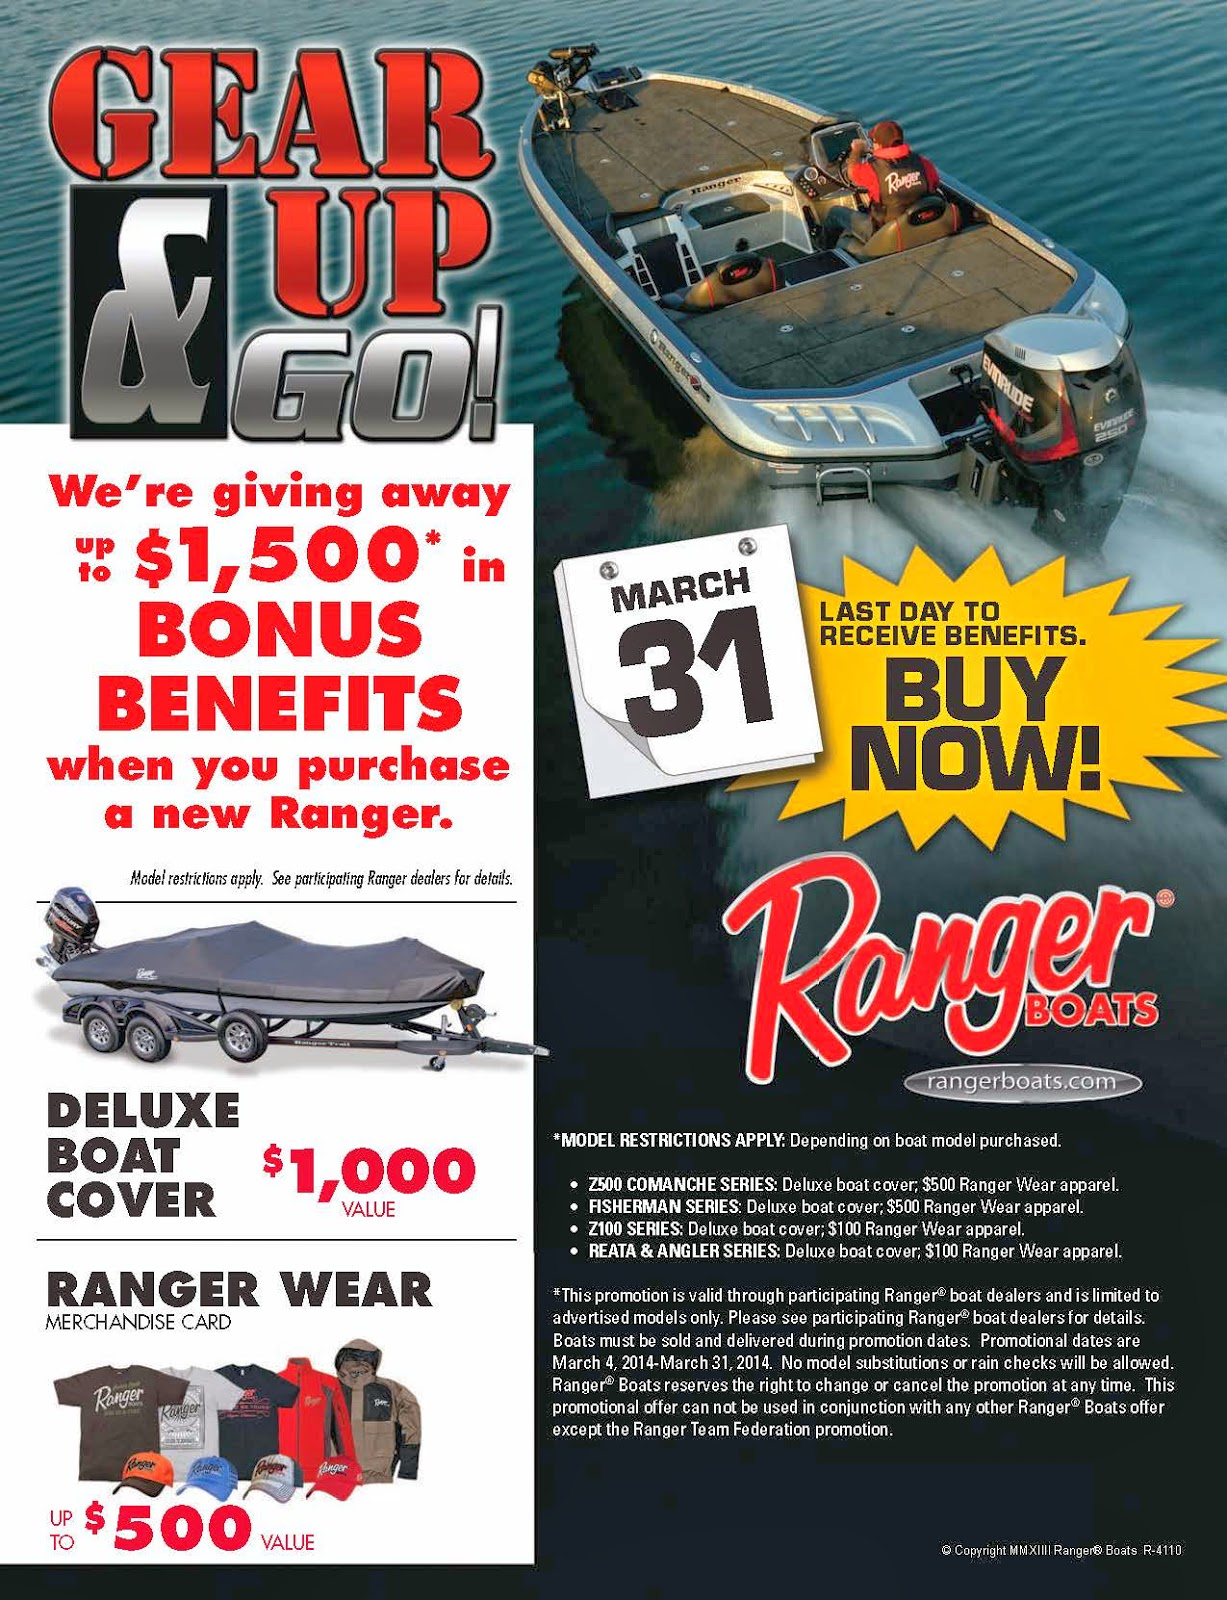 http://www.rangerboats.com/staticpages/includes/RangerGearUpPromo.html?utm_source=RANGERHOME&utm_medium=BANNERS&utm_campaign=GEARUP